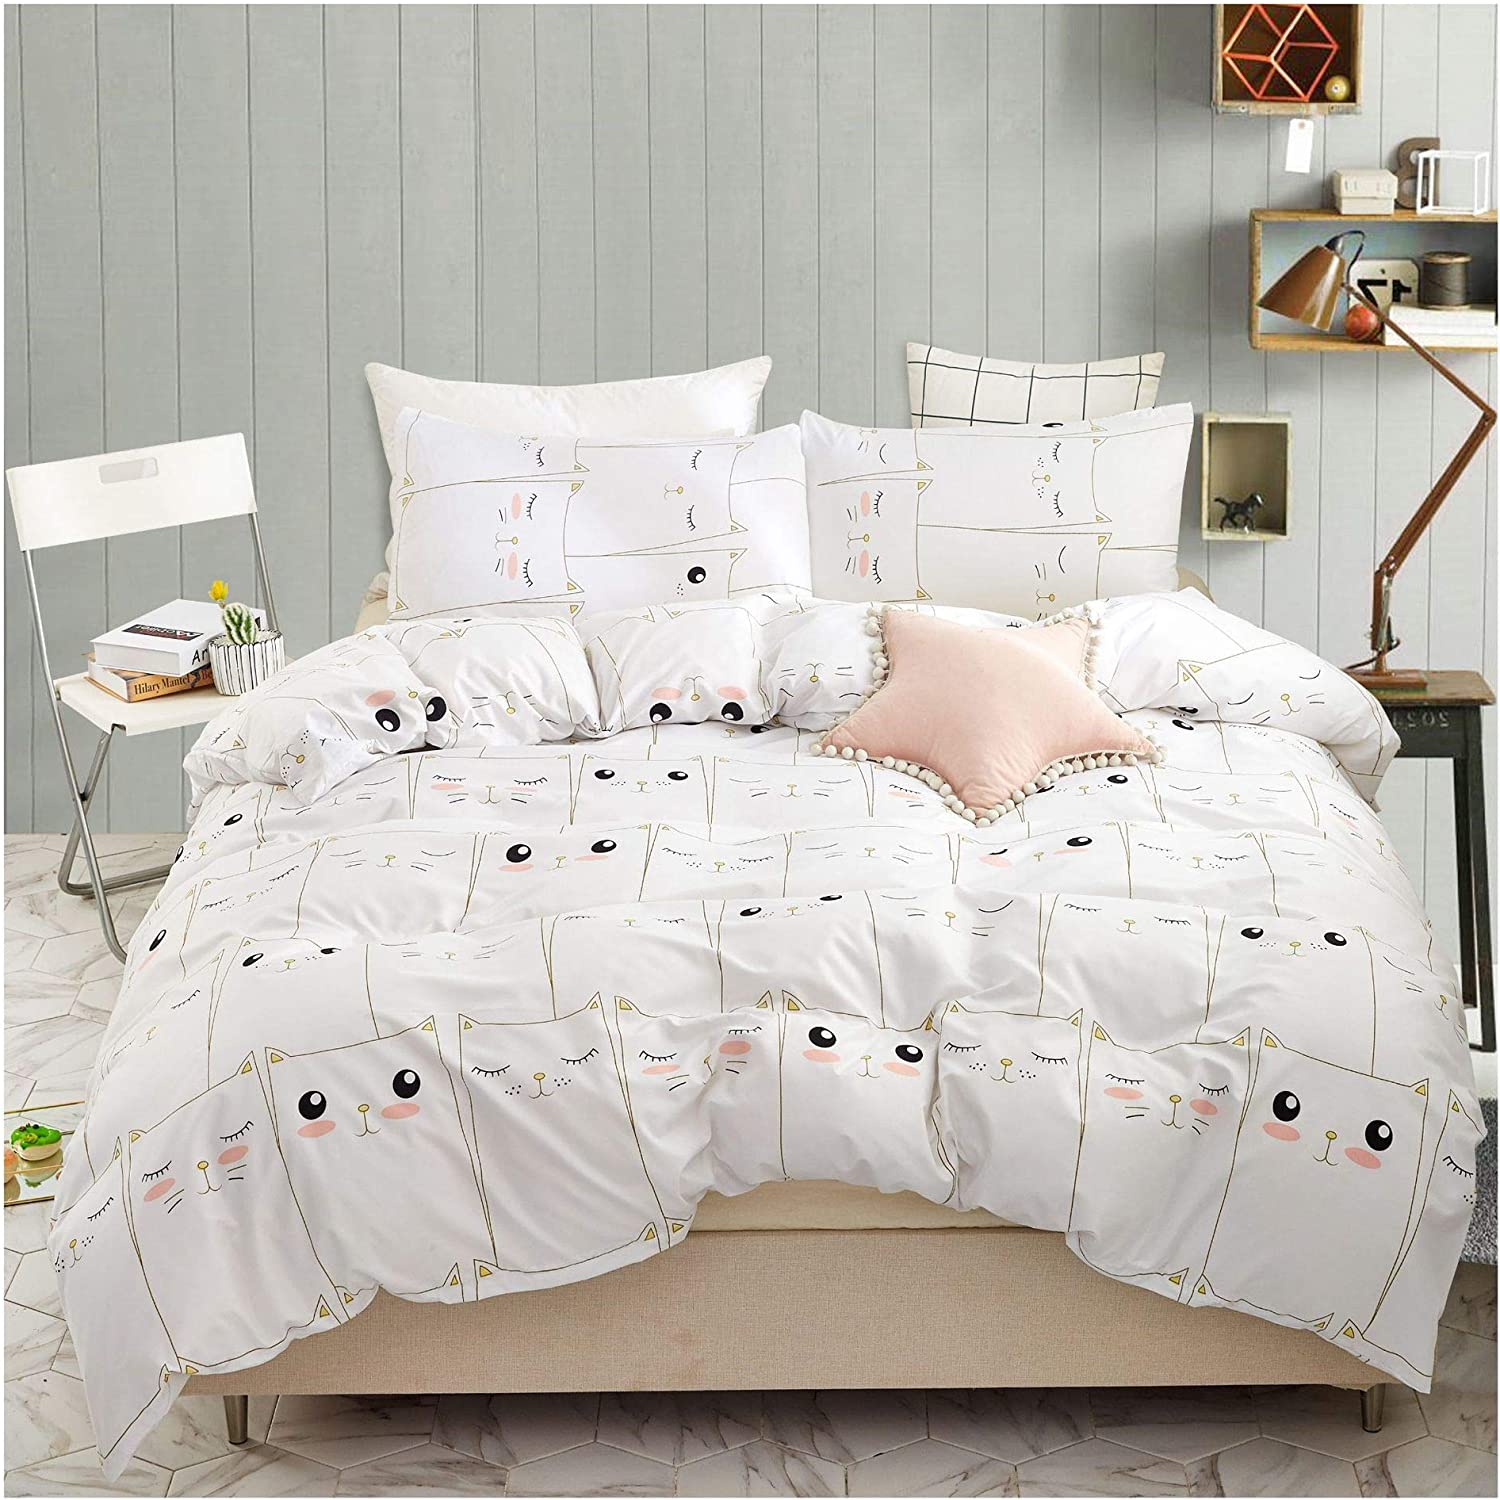 YZZ COLLECTION Kids Twin Bedding Duvet Cover Set,Premium Microfiber,Mini Cats Pattern On Comforter Cover-2pcs:1x Duvet Cover 1x Pillowcases,Comforter Cover with Zipper Closure (Twin)